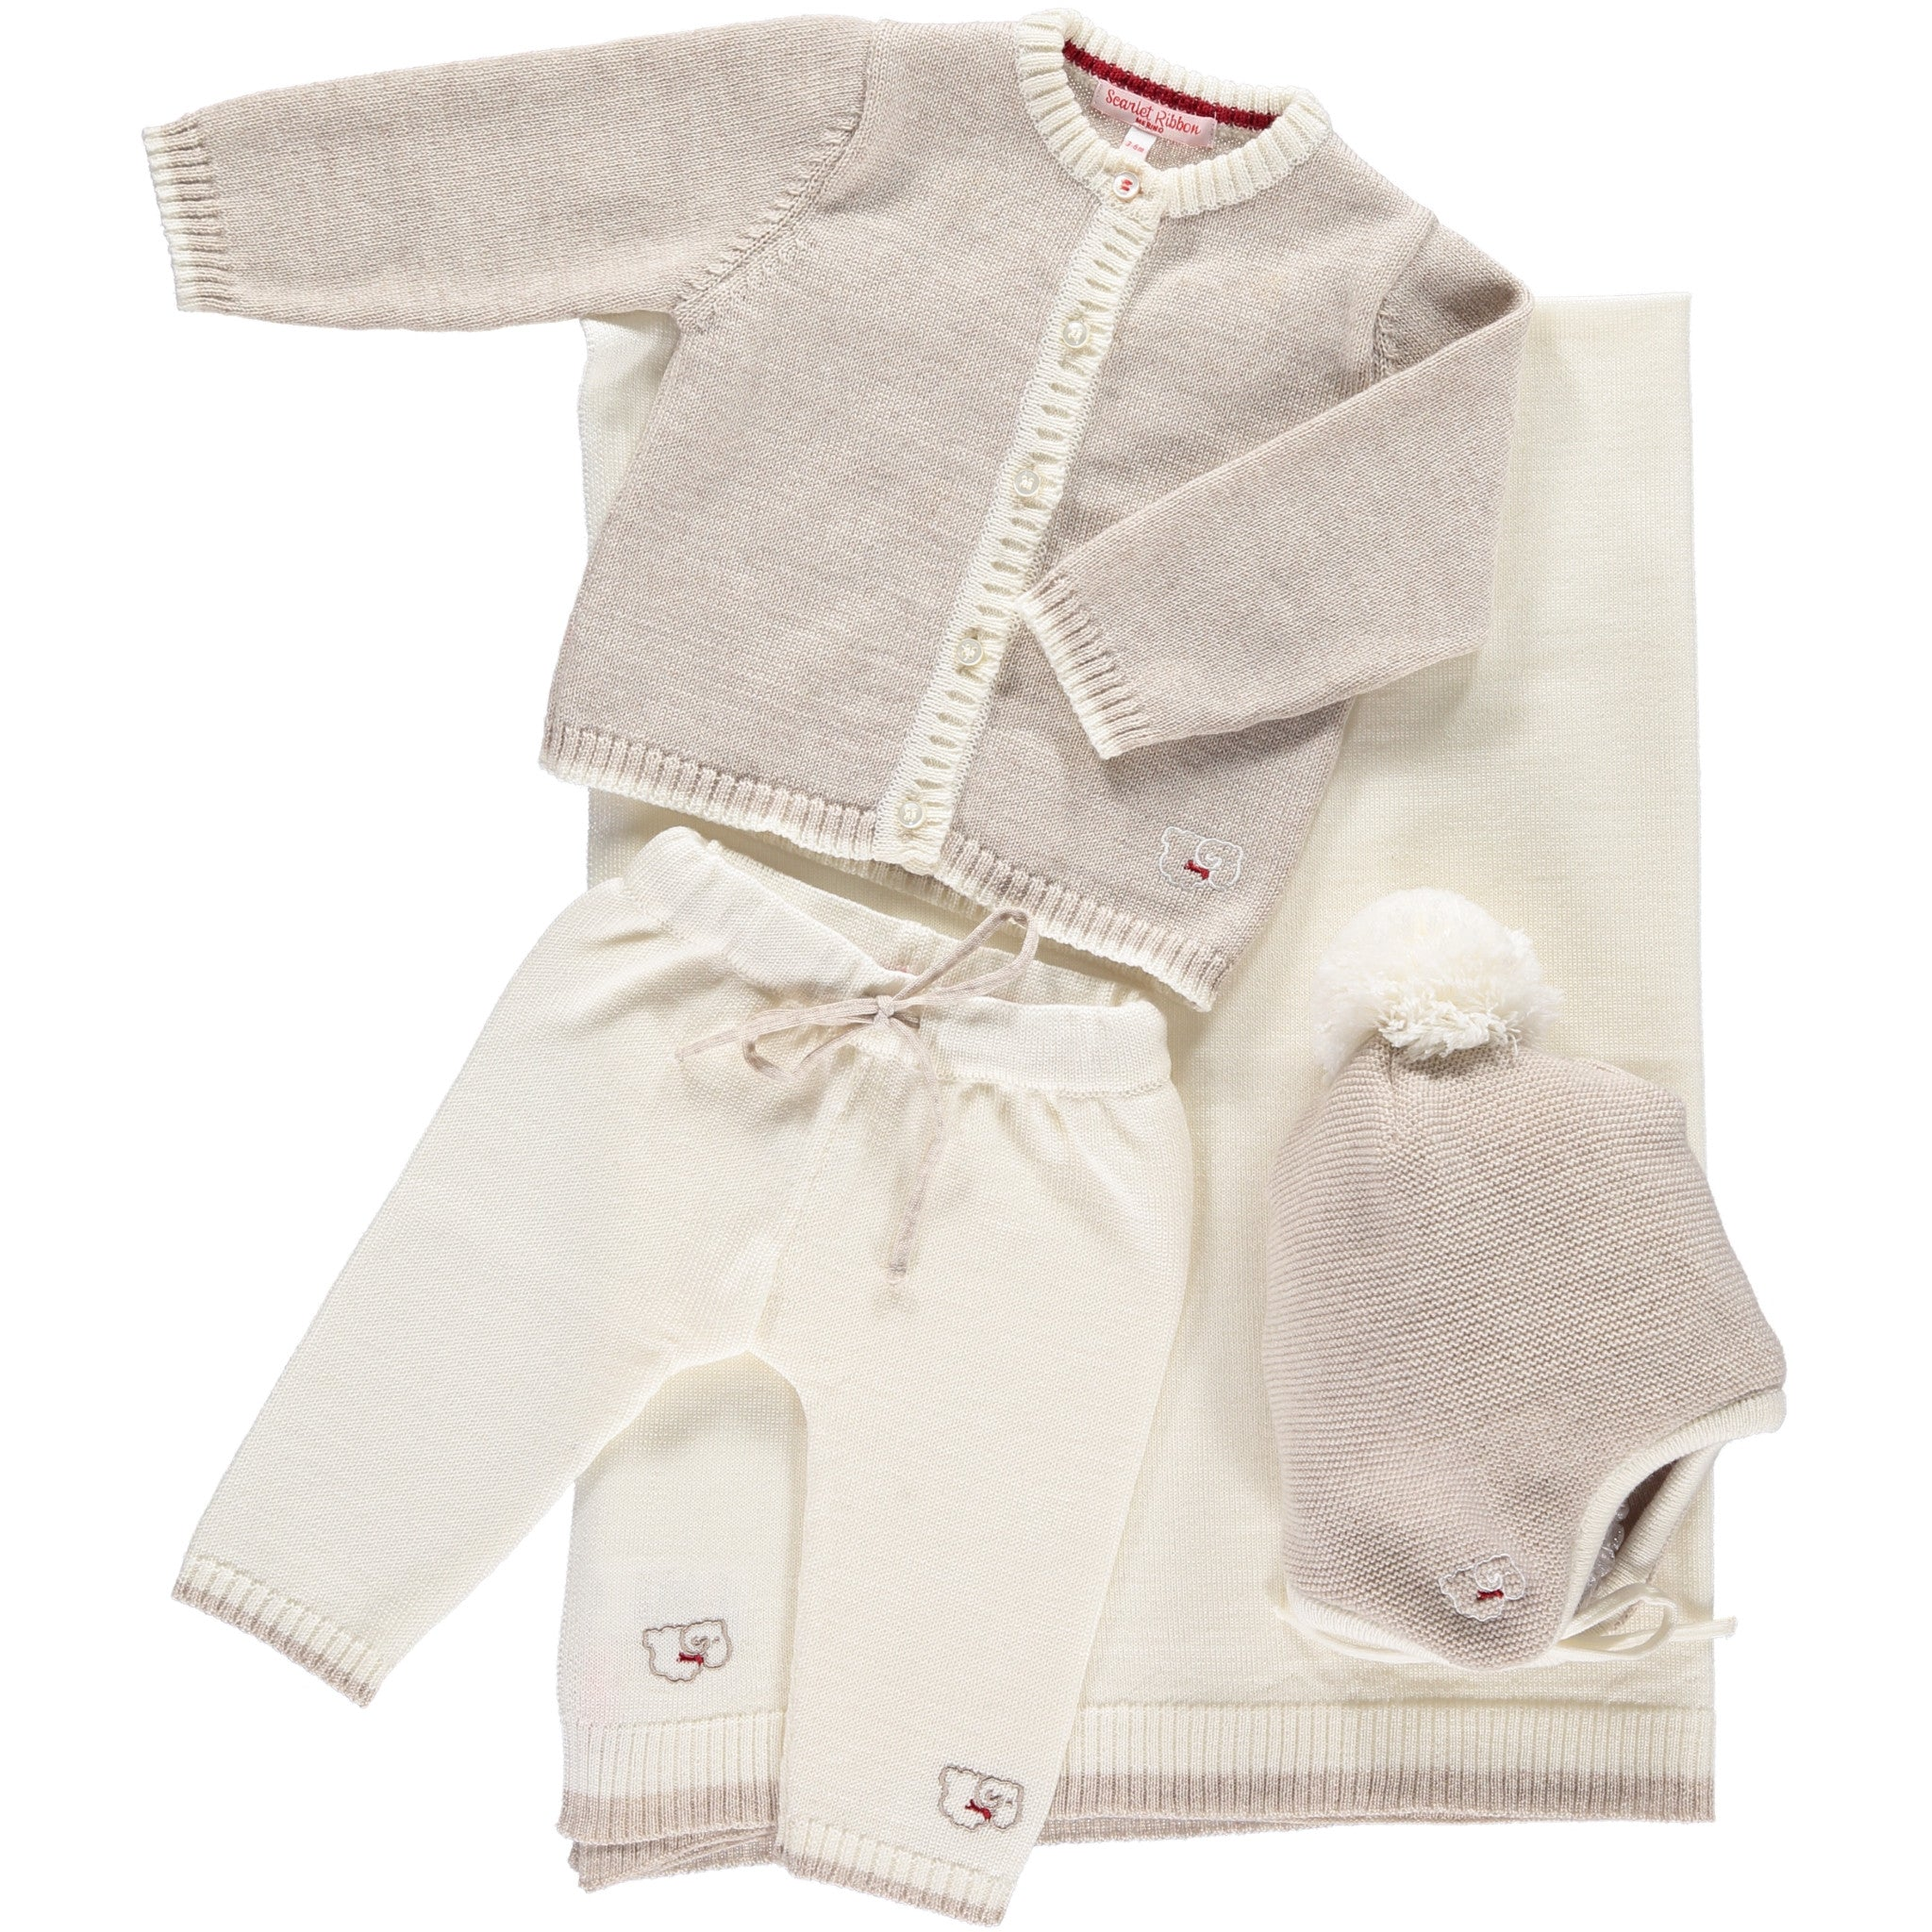 77d4b3cae Scarlet Ribbon Baby Gift Set - Cardigan   Leggings